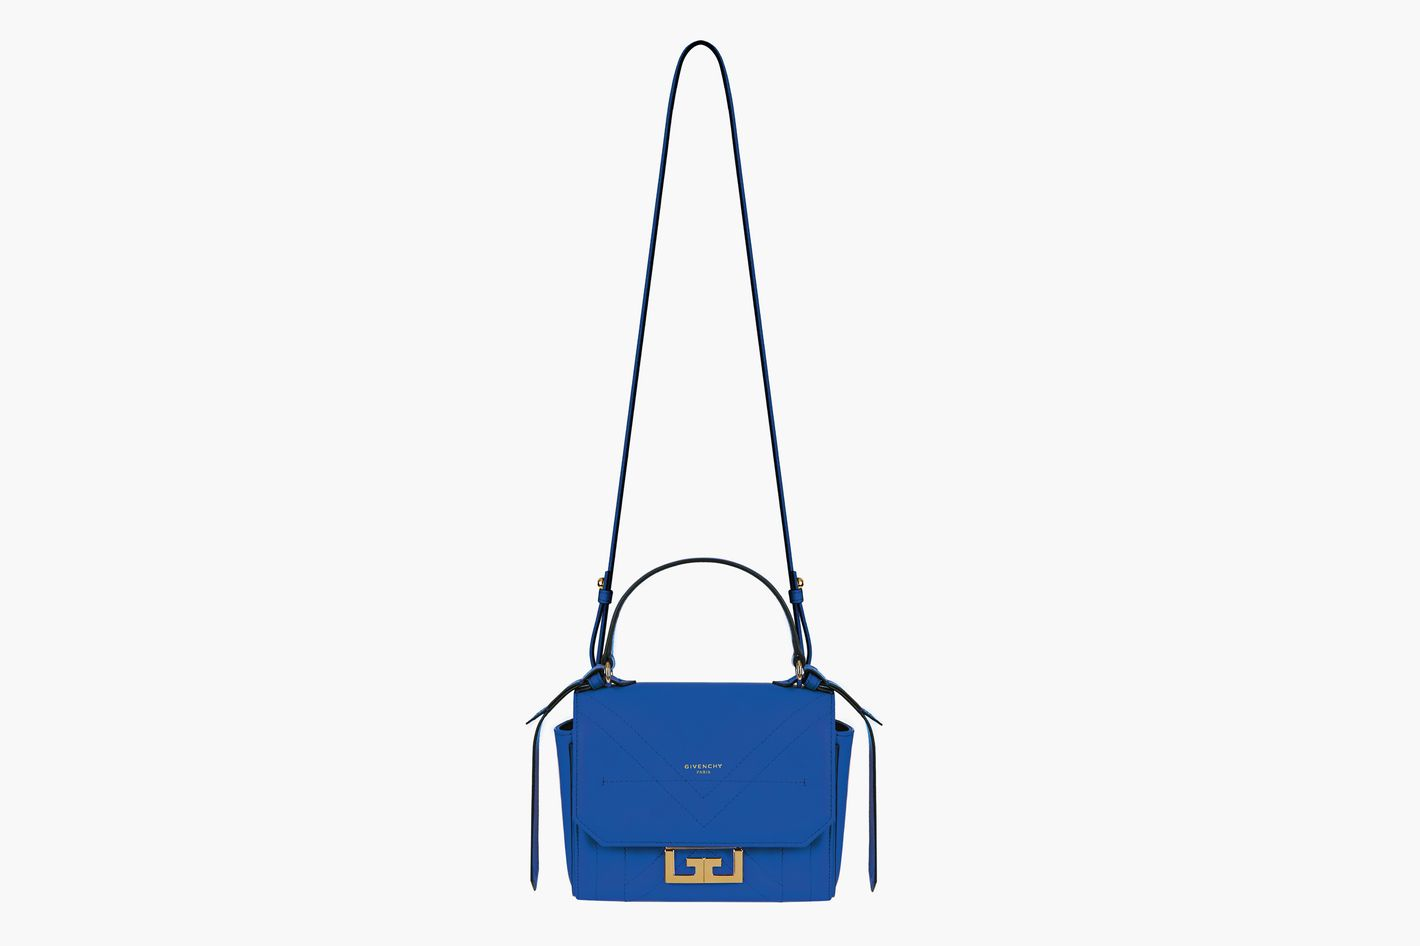 Givenchy Mini Eden Bag in Smooth Leather